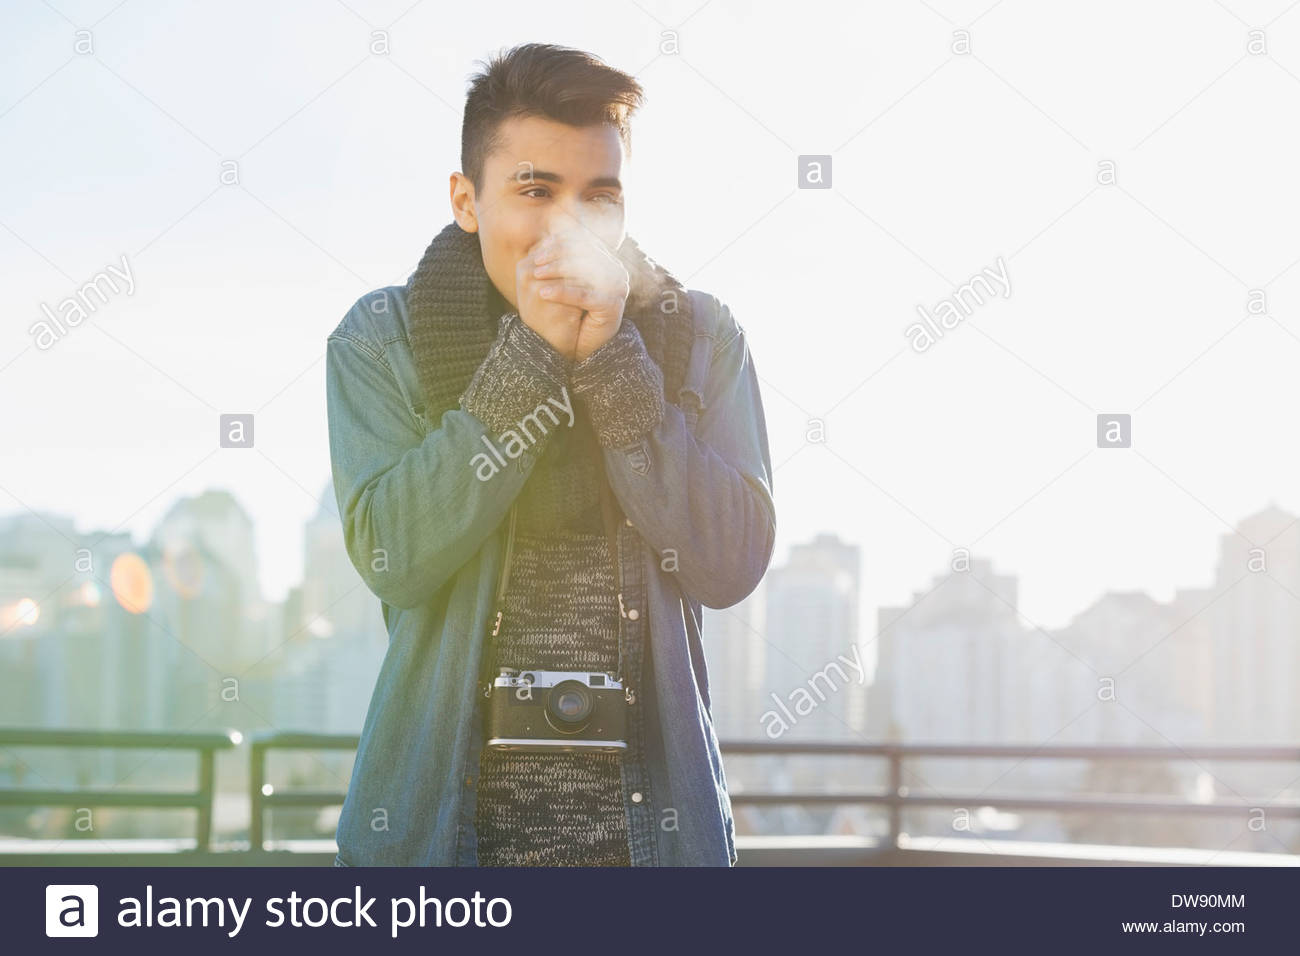 Man standing outdoors warming hands in winter - Stock Image